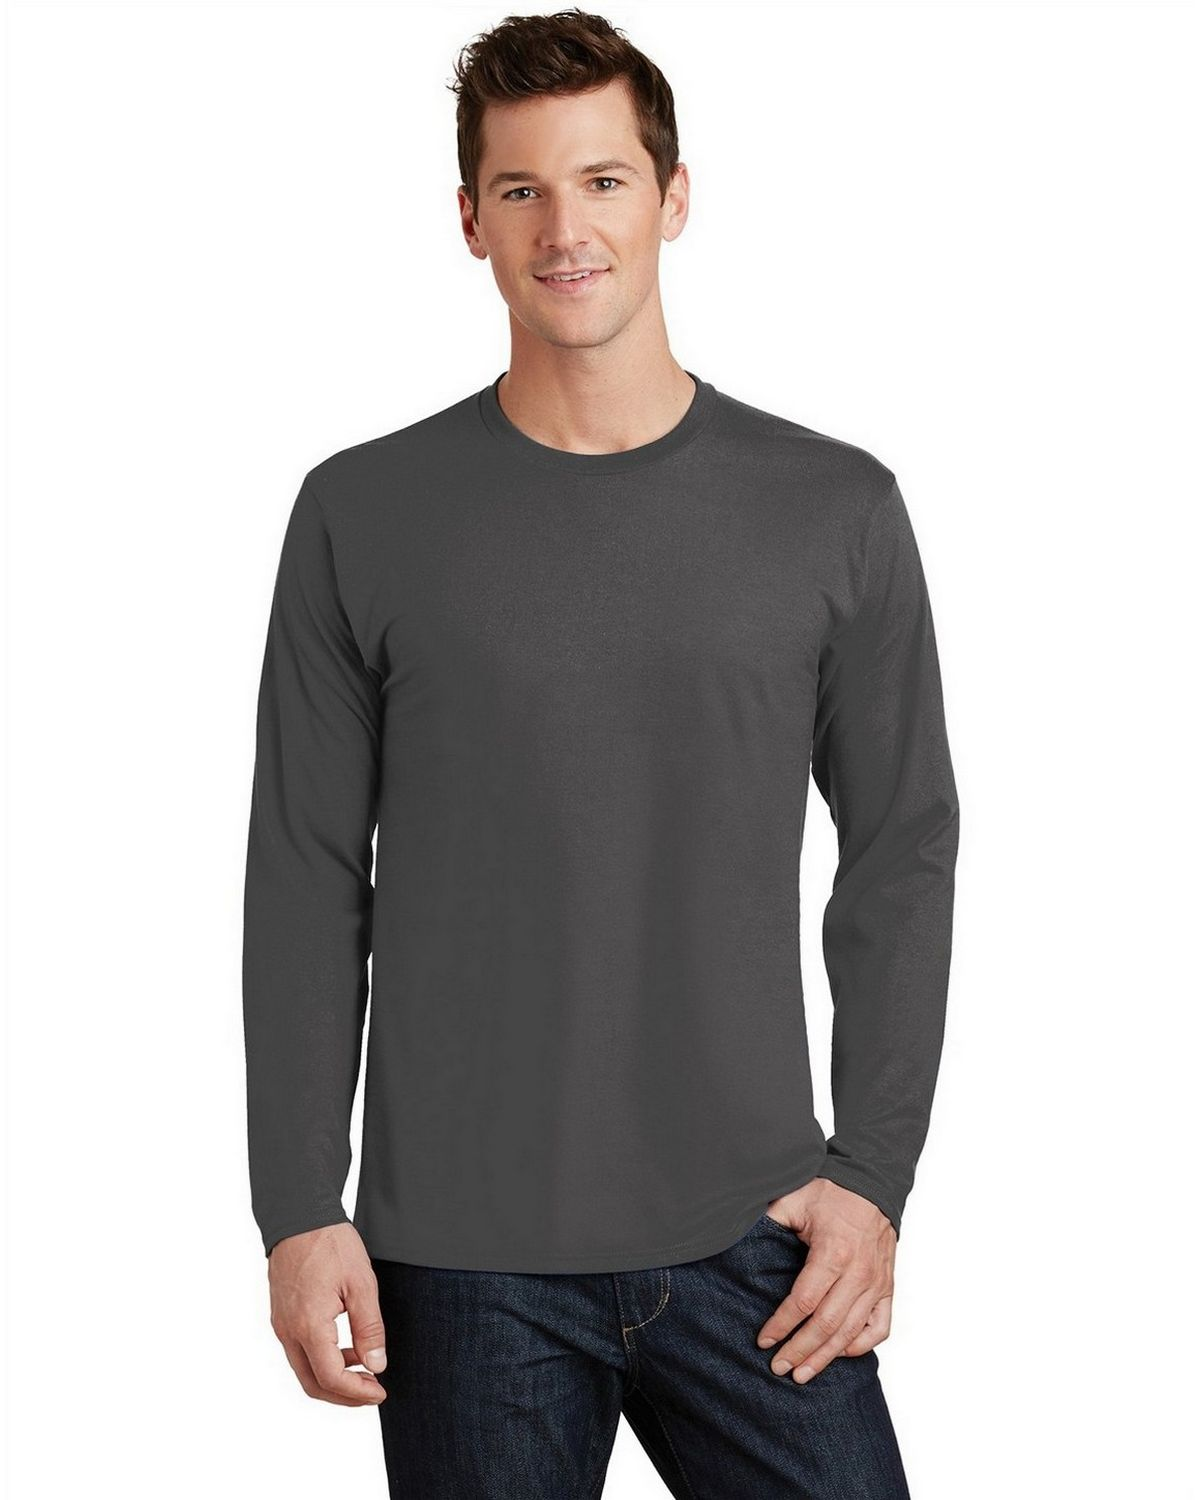 Port & Company PC450LS Long Sleeve Tee - Charcoal - S PC450LS